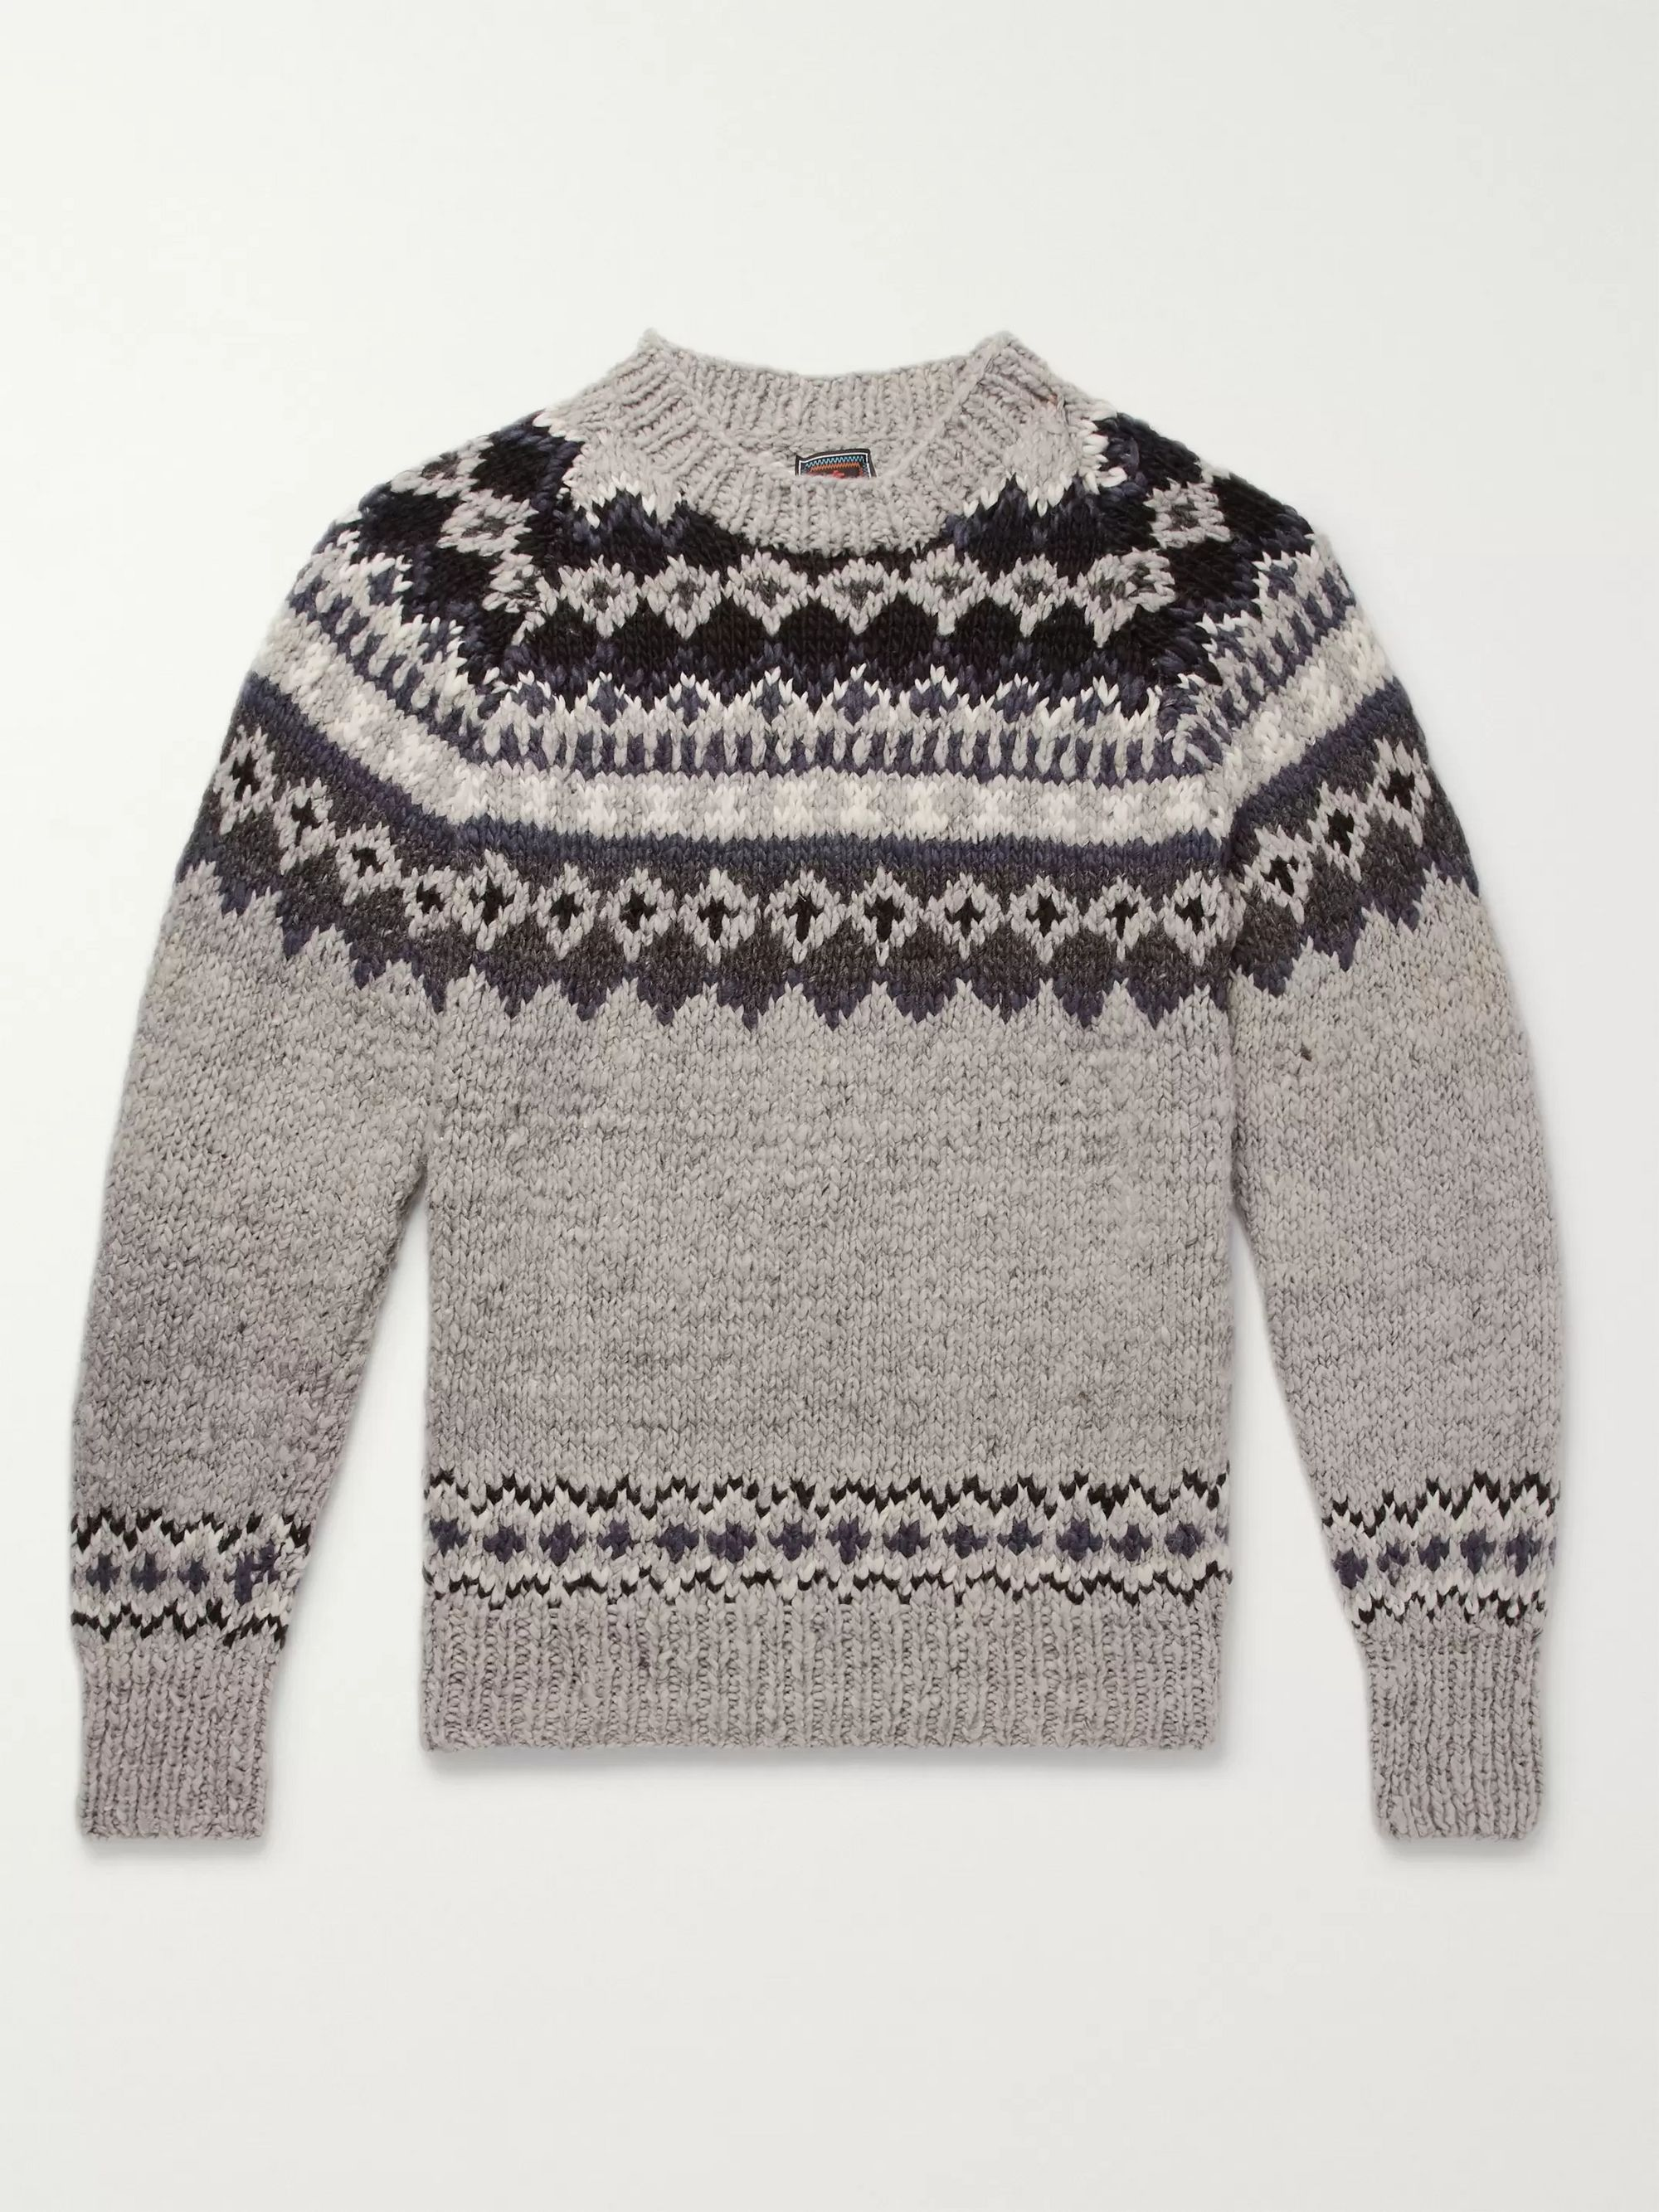 Monitaly + Chamula Fair Isle Merino Wool Sweater